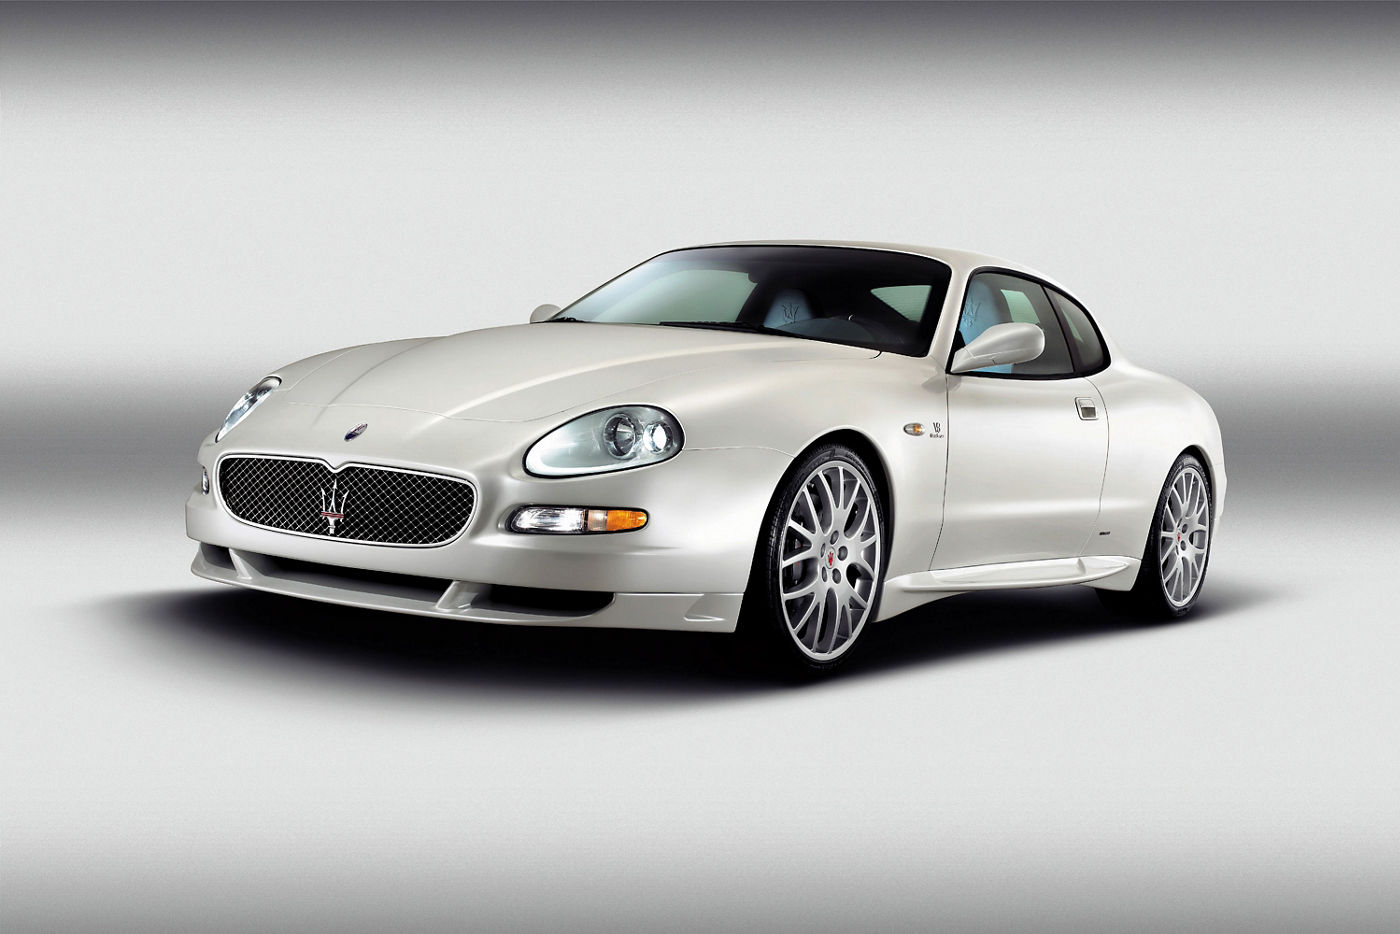 2004 Maserati GranSport M138 - exterior view of the classic car model in white